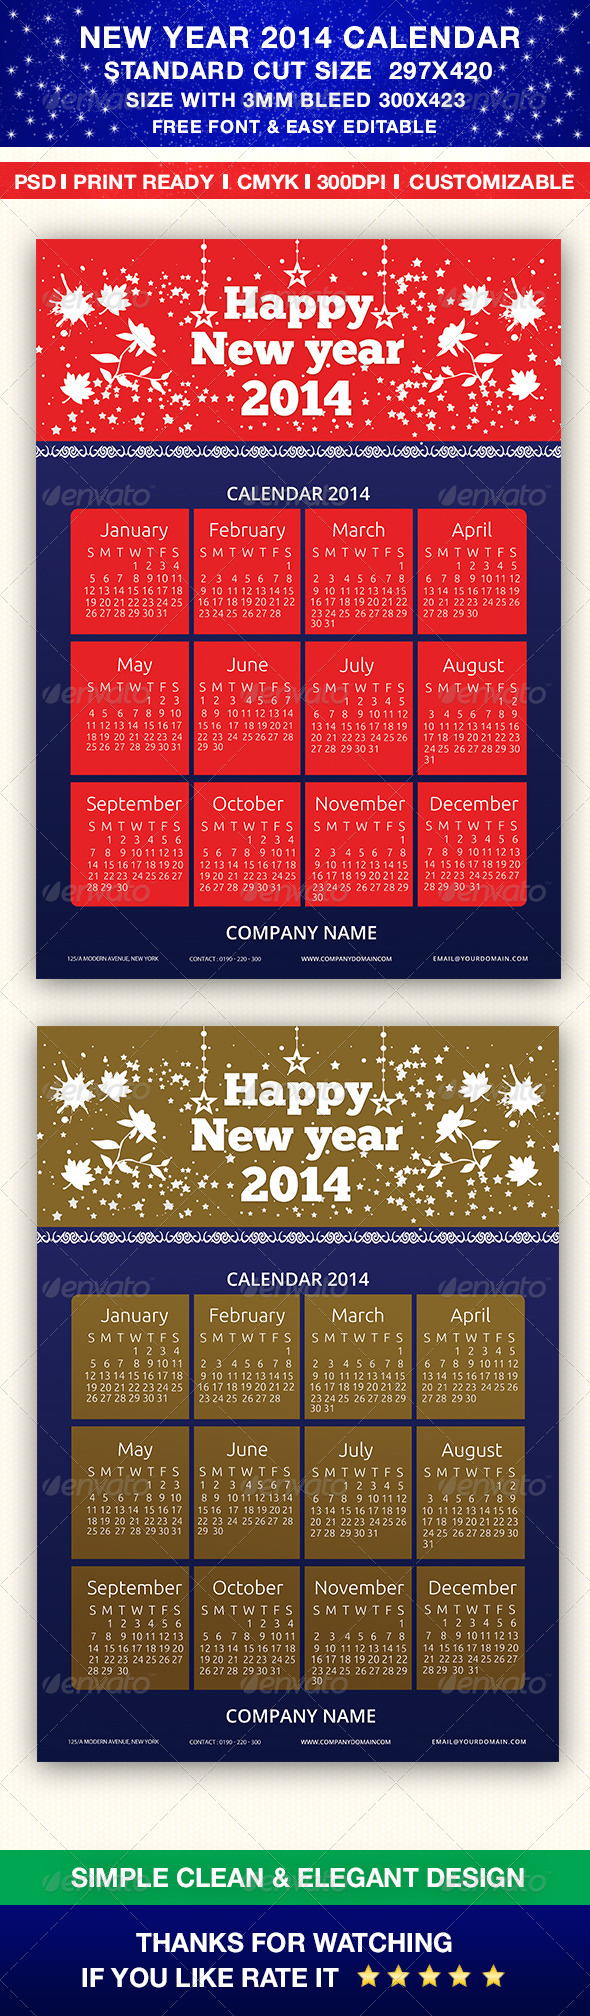 GraphicRiver New Year 2014 Calendar 6448894